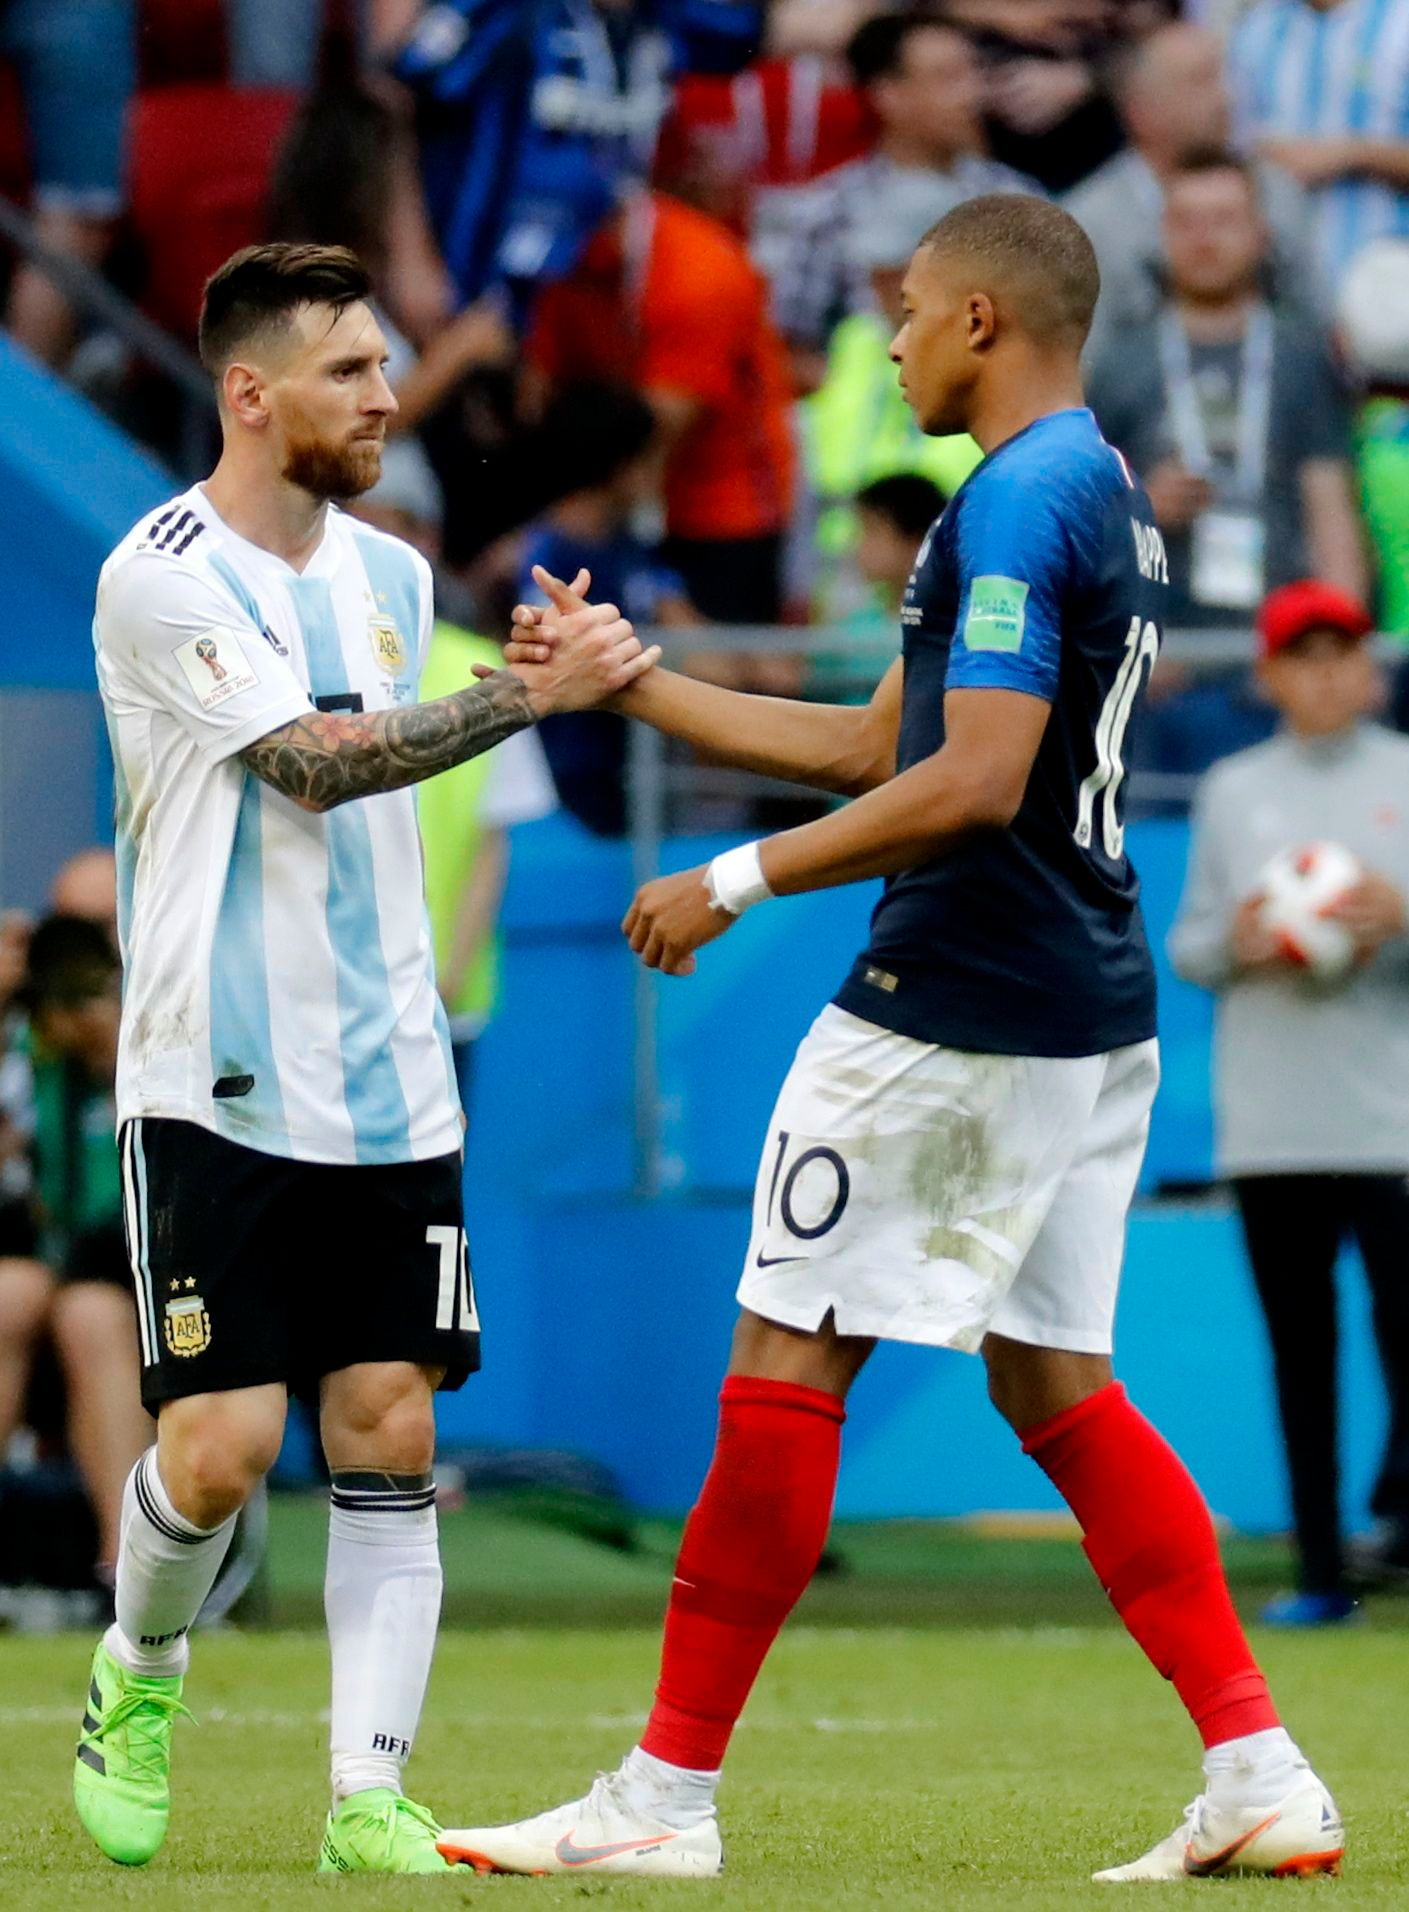 Kylian Mbappe Leads France Past Messis Argentina And Into